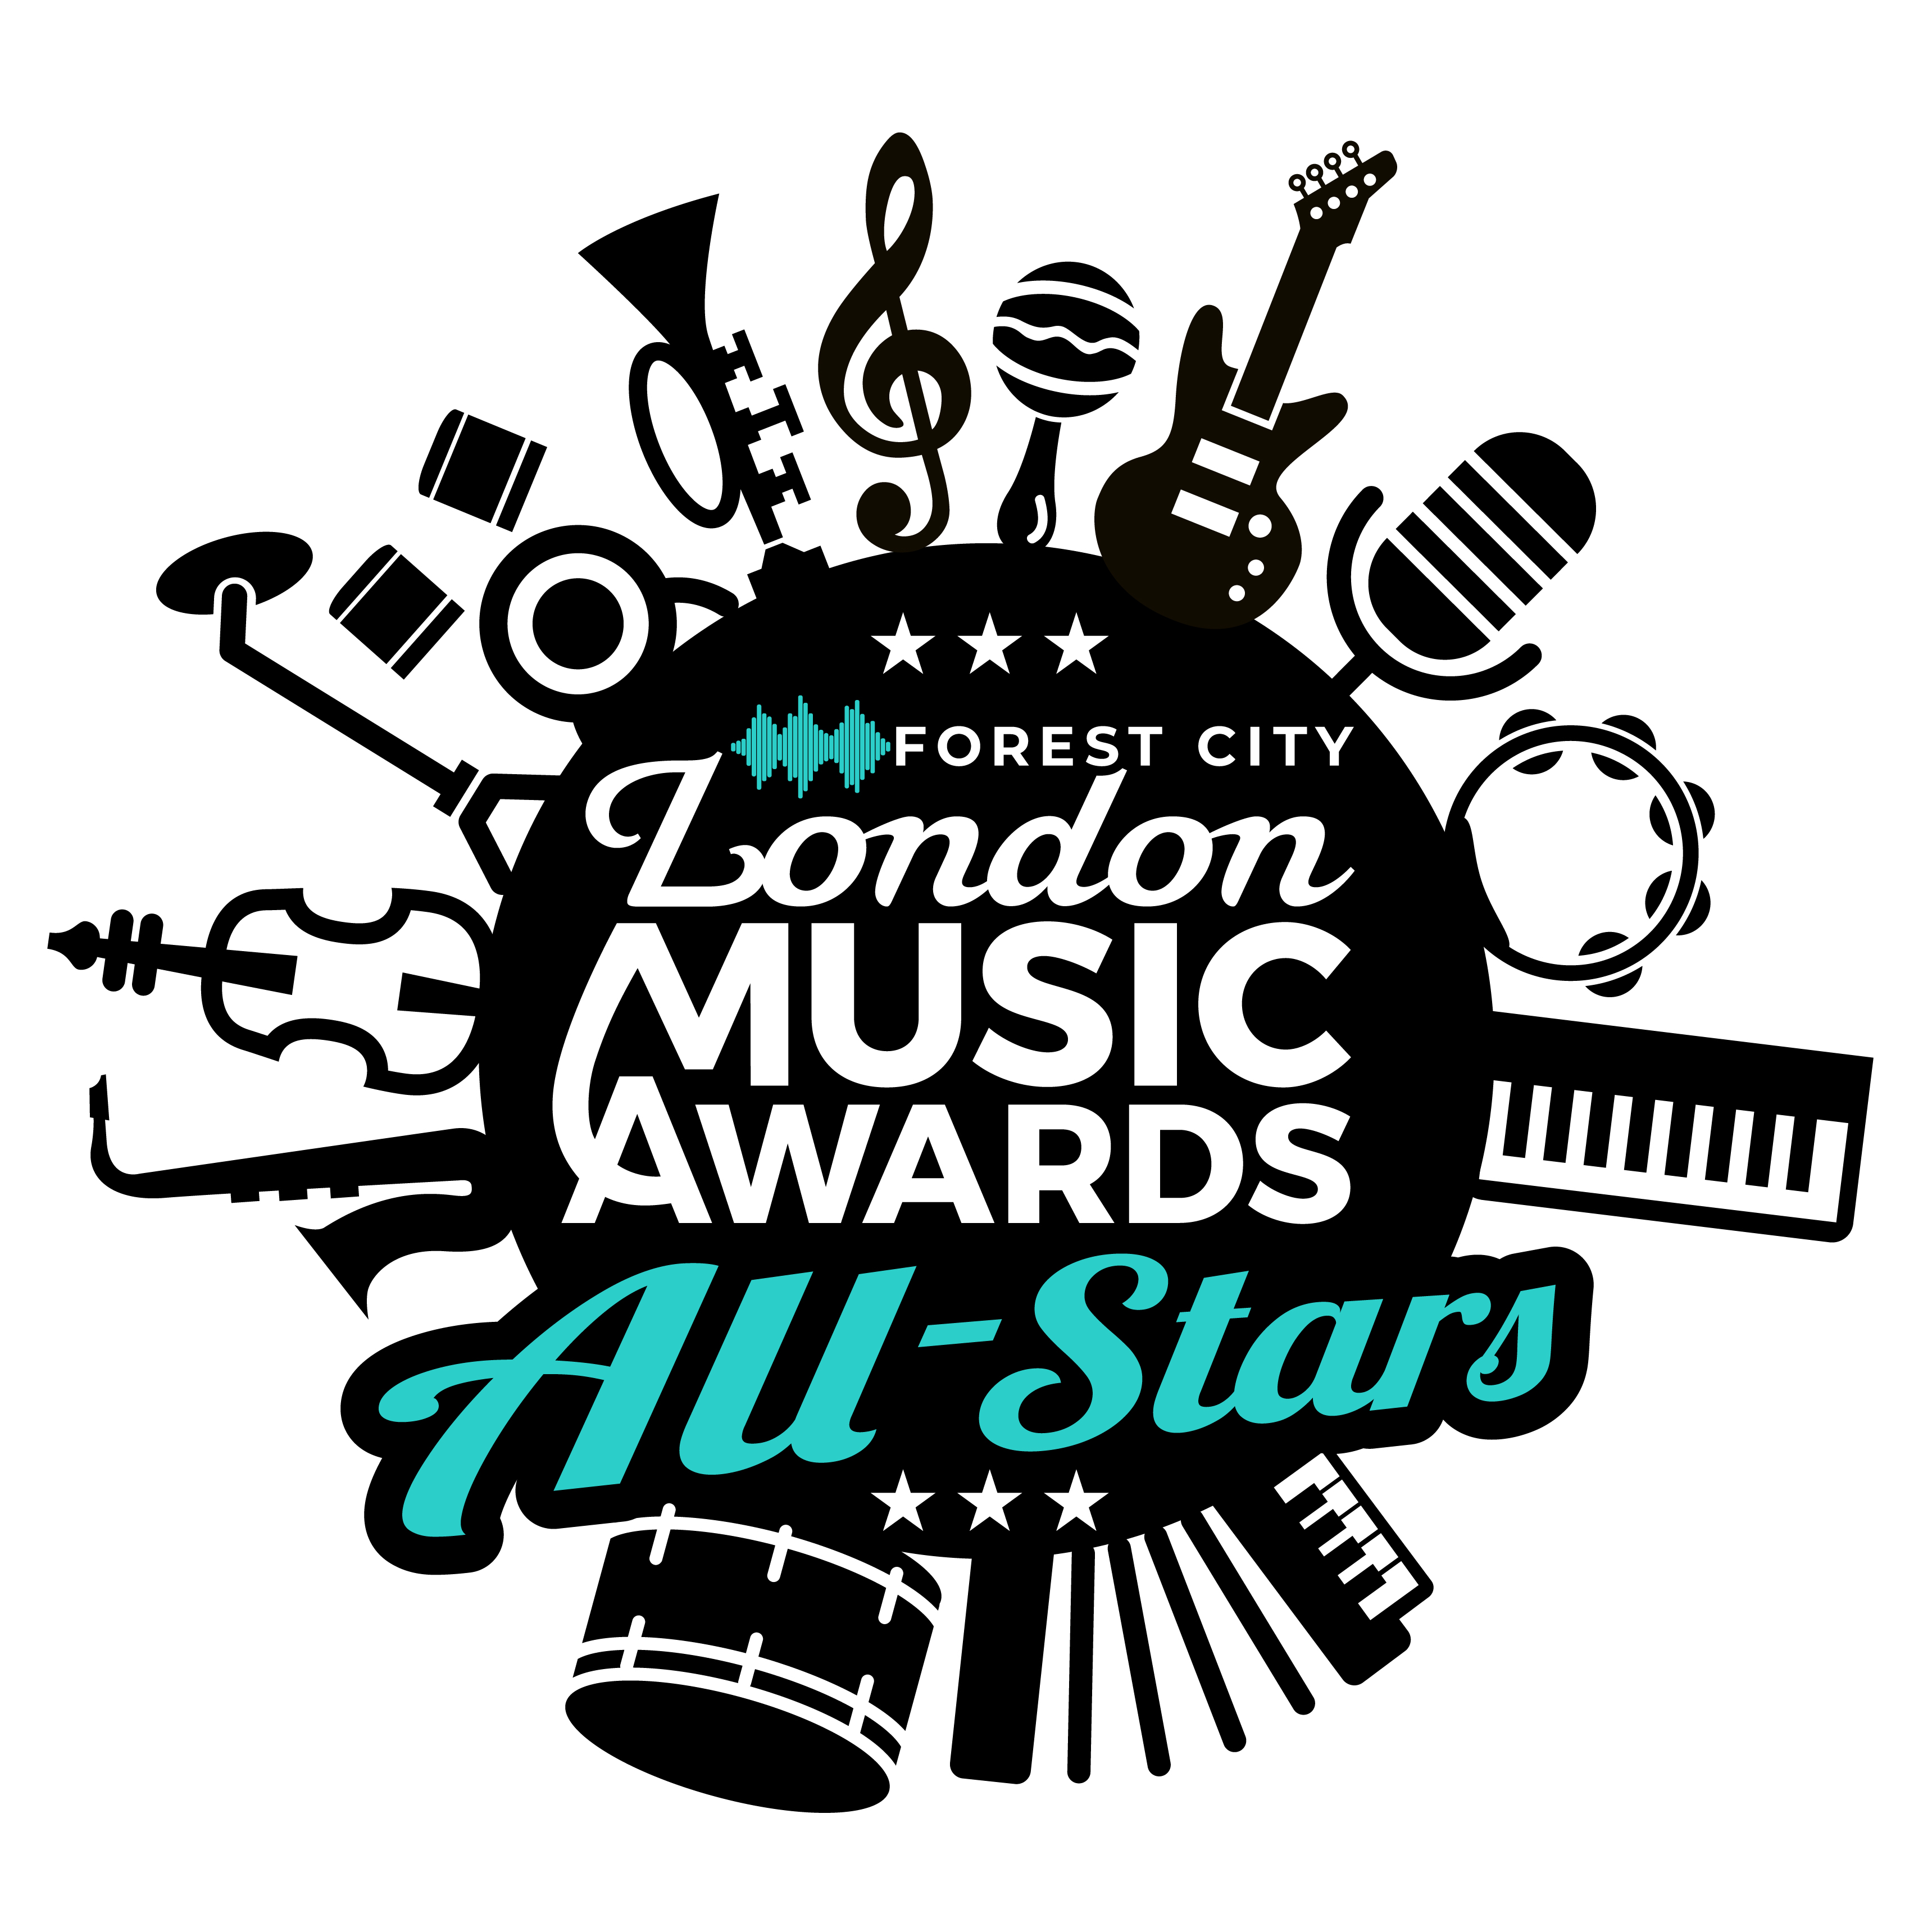 Forest City London Music Awards Allstars - Celebrating the Best!